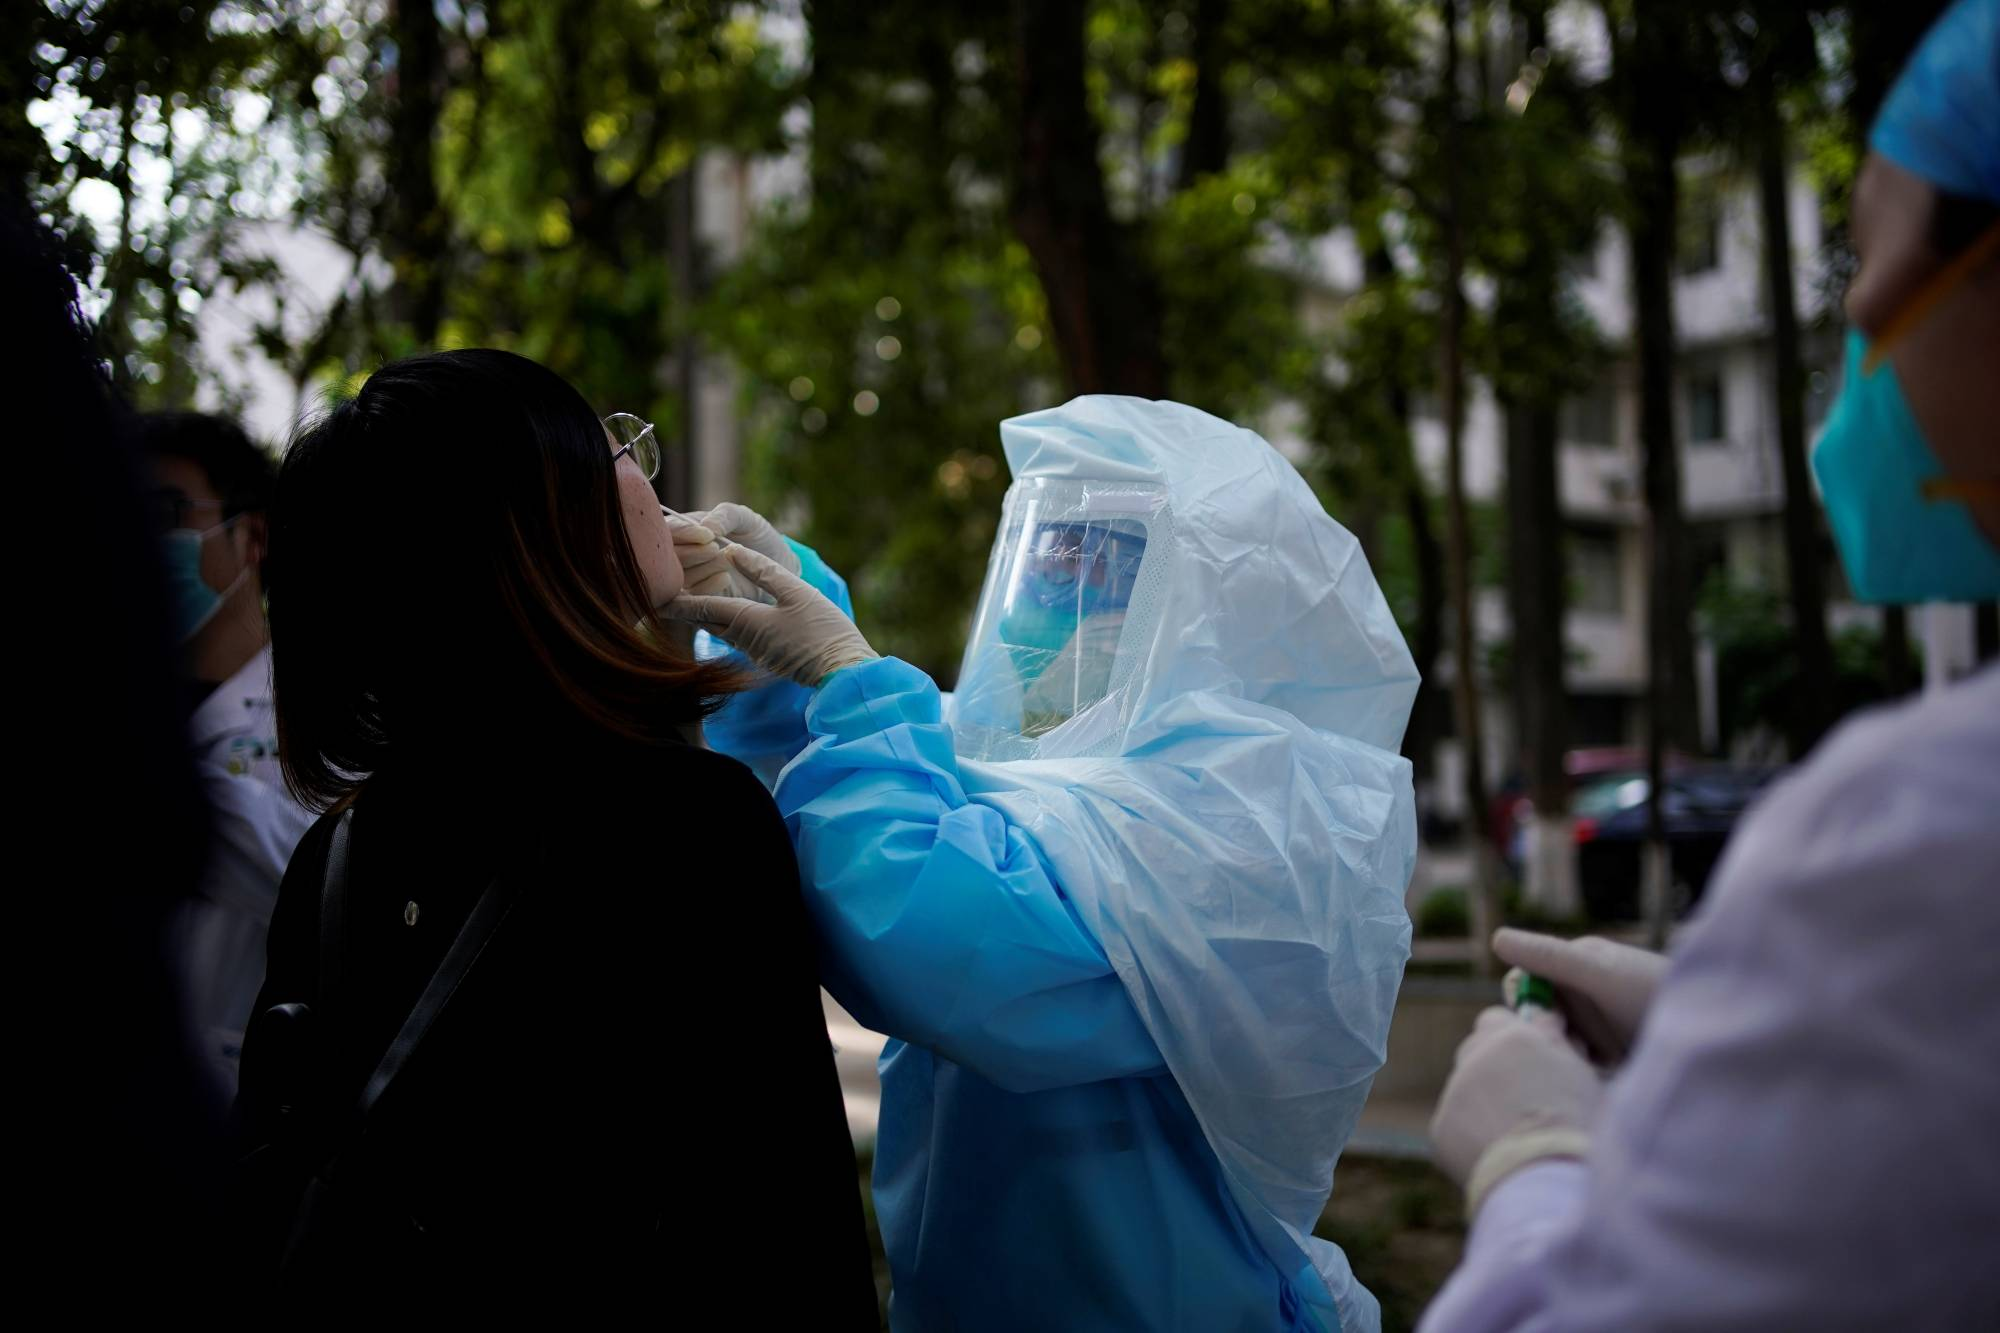 A woman receives a nucleic acid test for COVID-19 on a street near a hospital in Wuhan, China, on Monday.   REUTERS